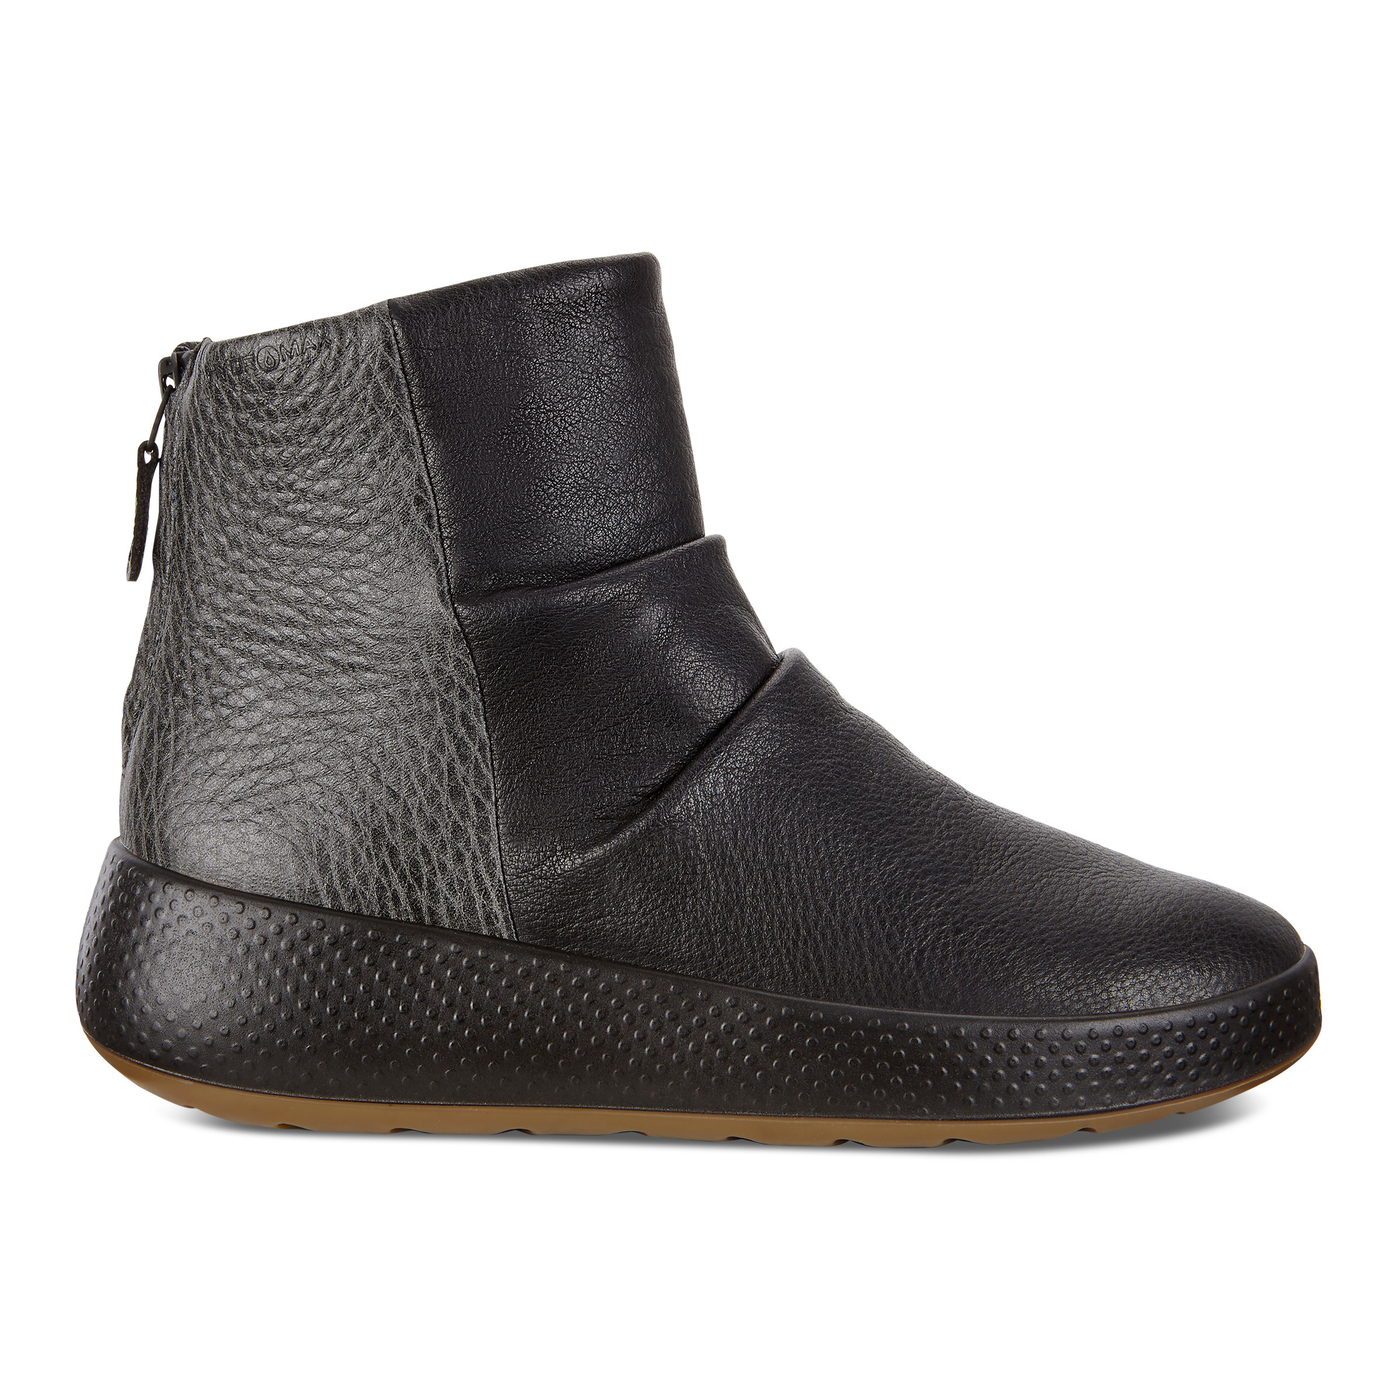 ECCO UKIUK Shinebright Backzip Ankle Boot